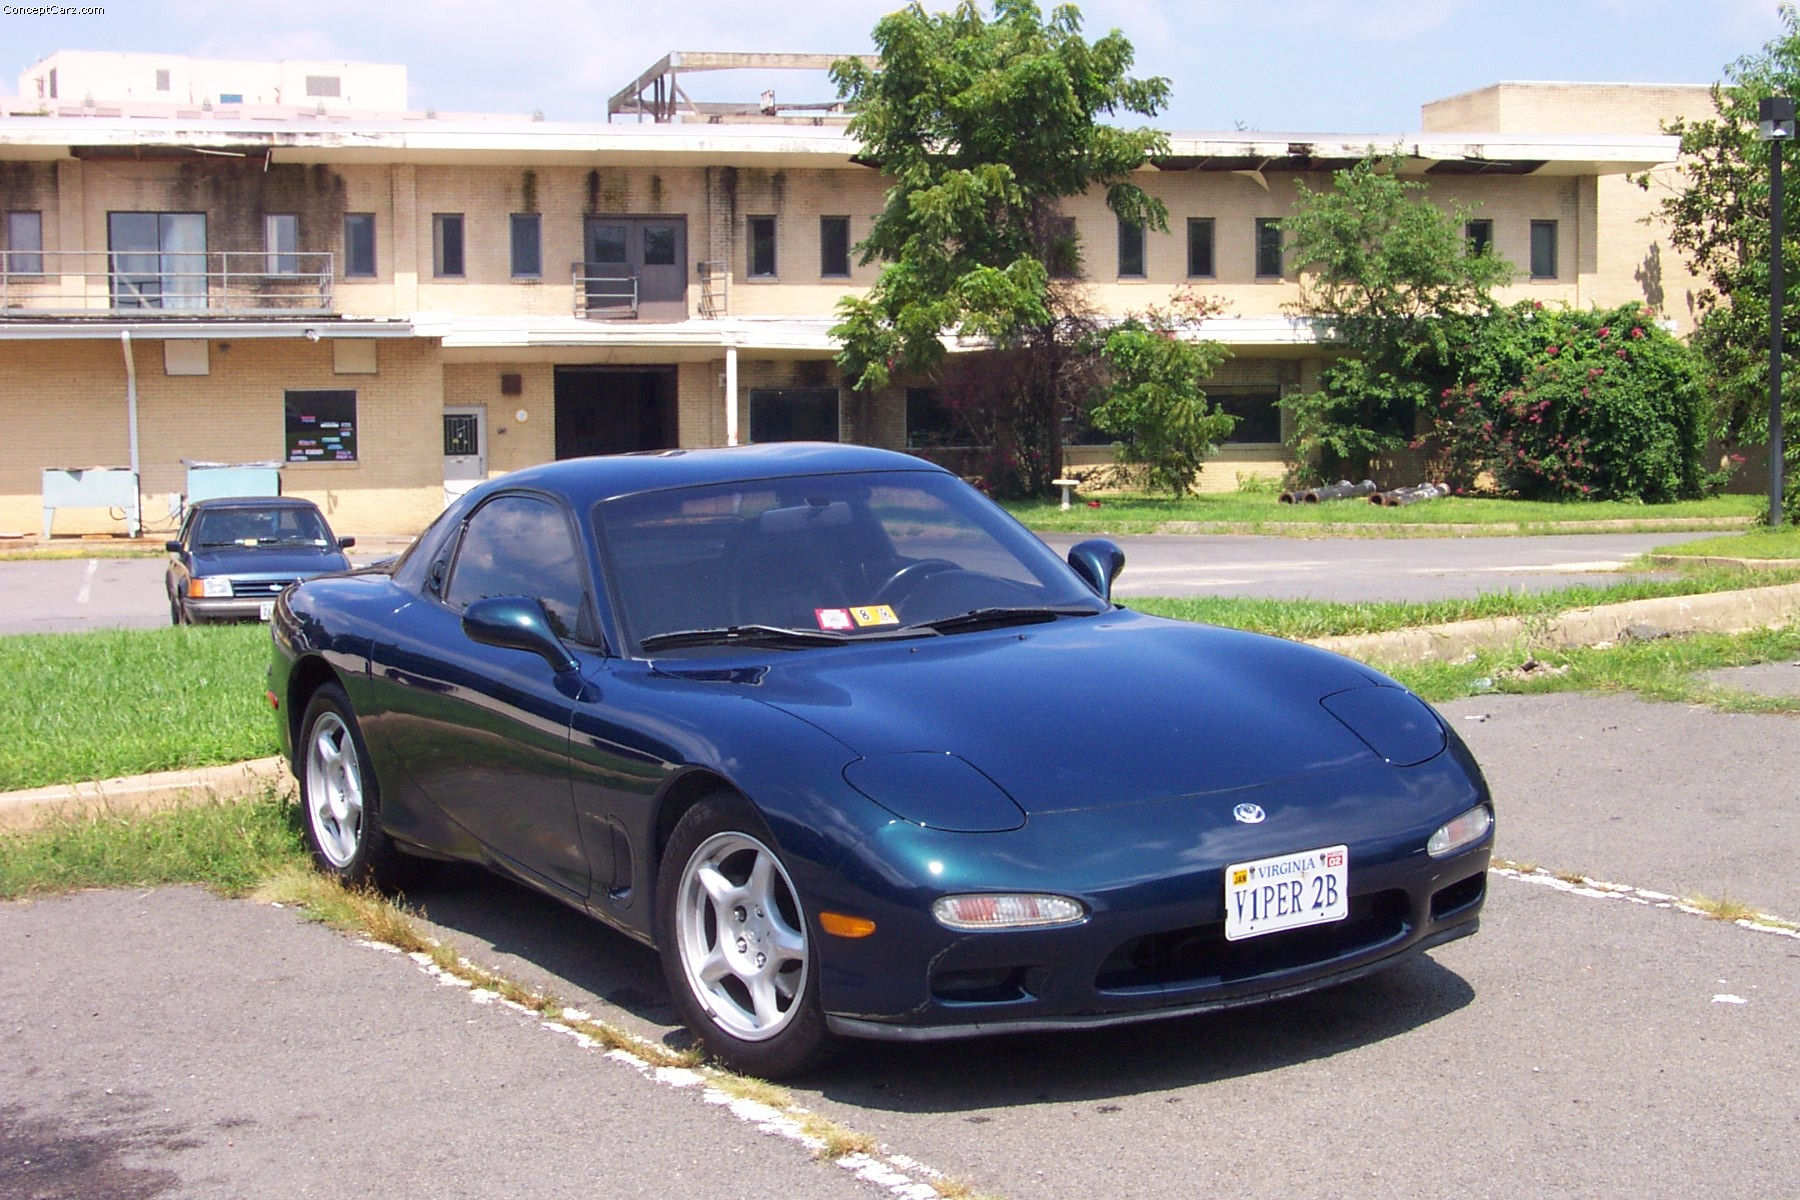 3dtuning of mazda rx-7 coupe 1997 3dtuning - unique on-line